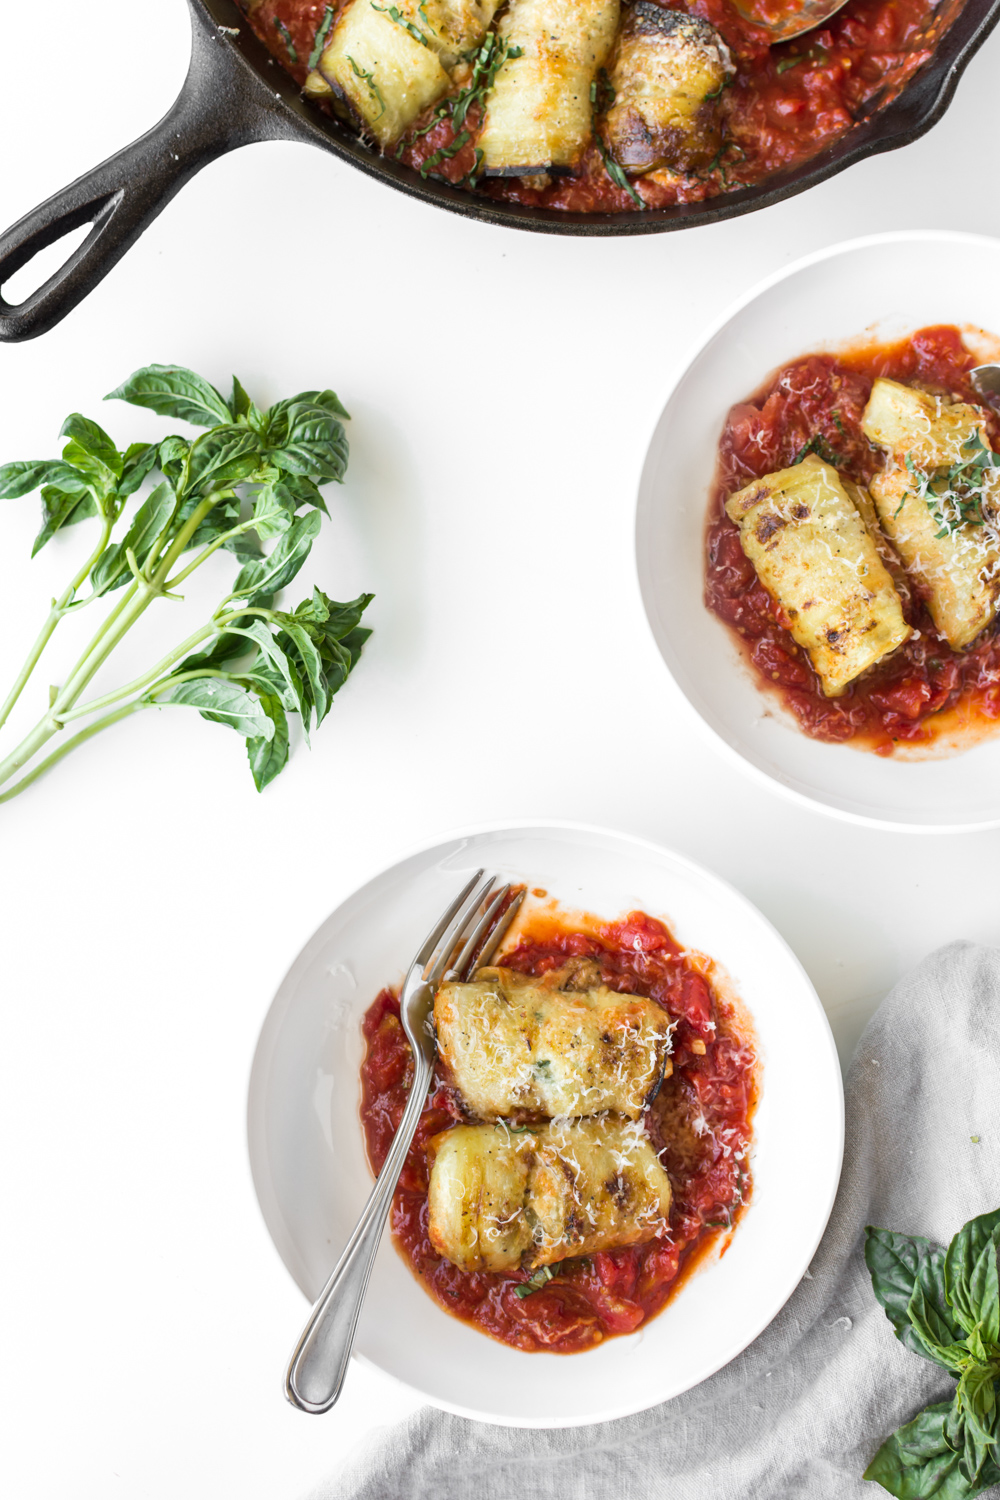 eggplant involtini with herbed ricotta filling.jpg